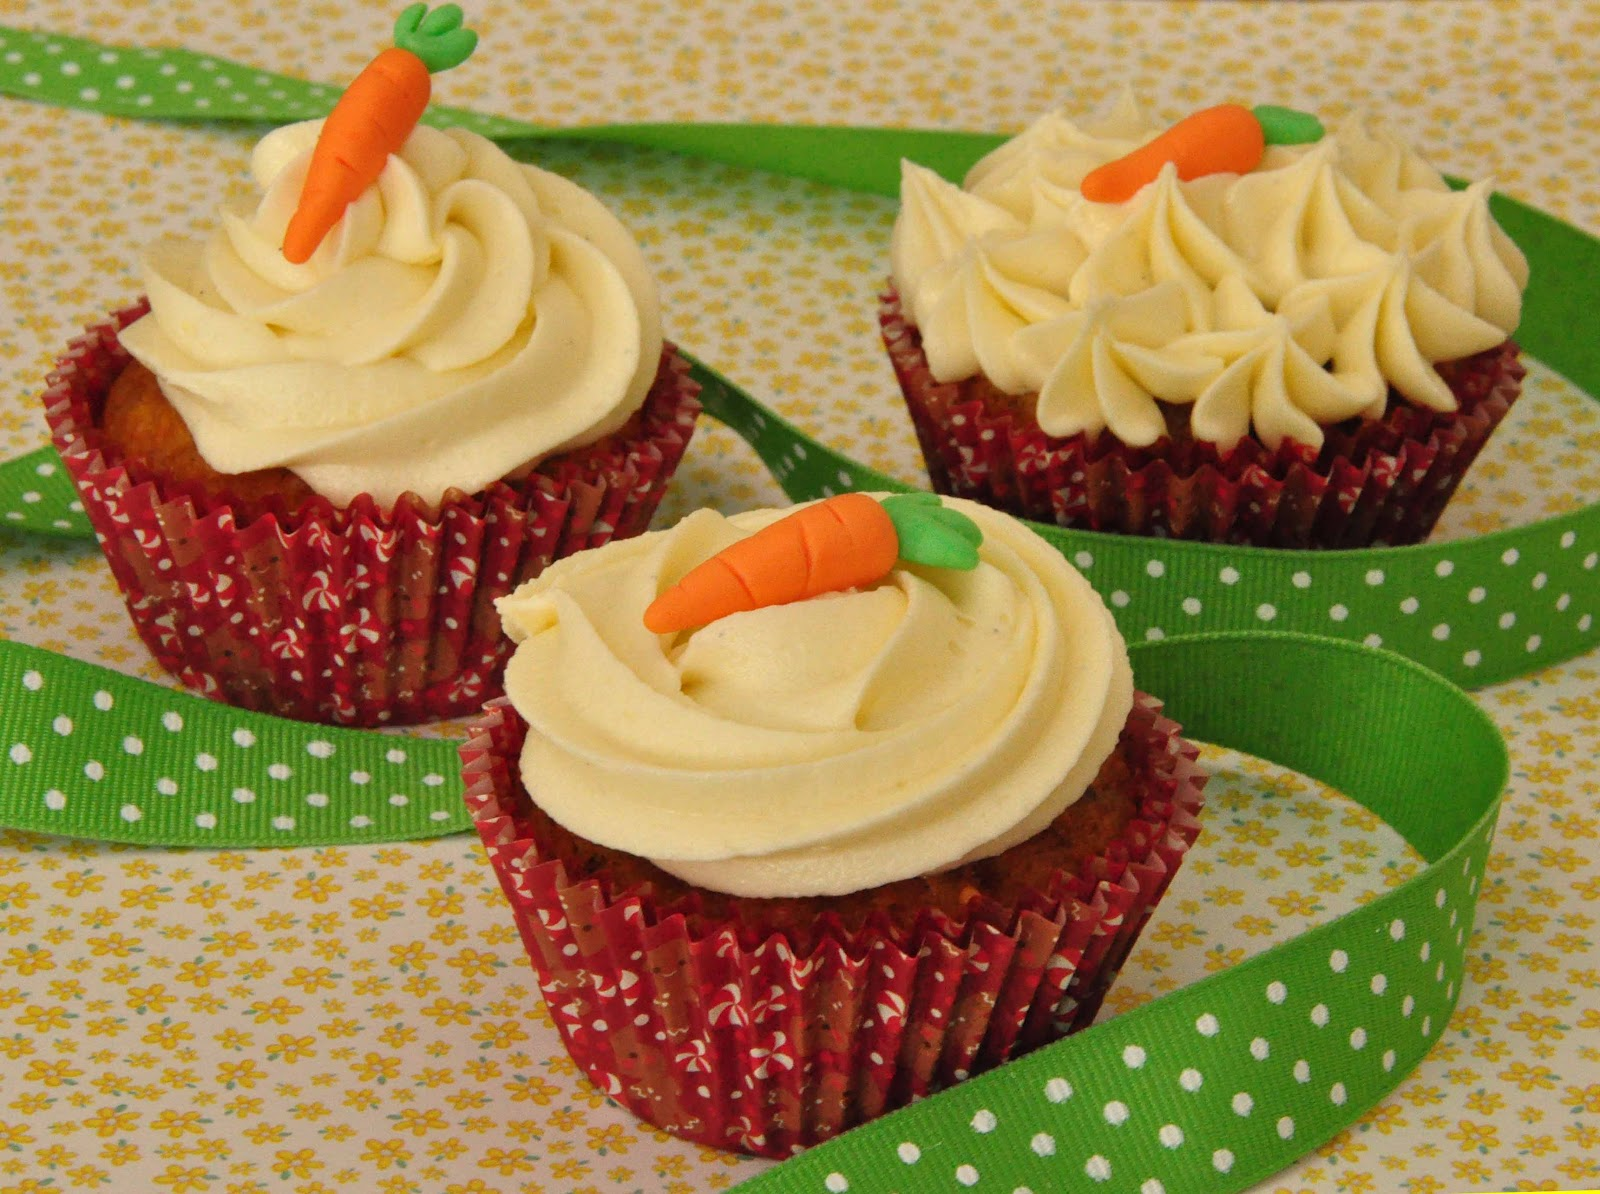 Cake Trails...: Carrot cupcakes with cream cheese frosting {Recipe}